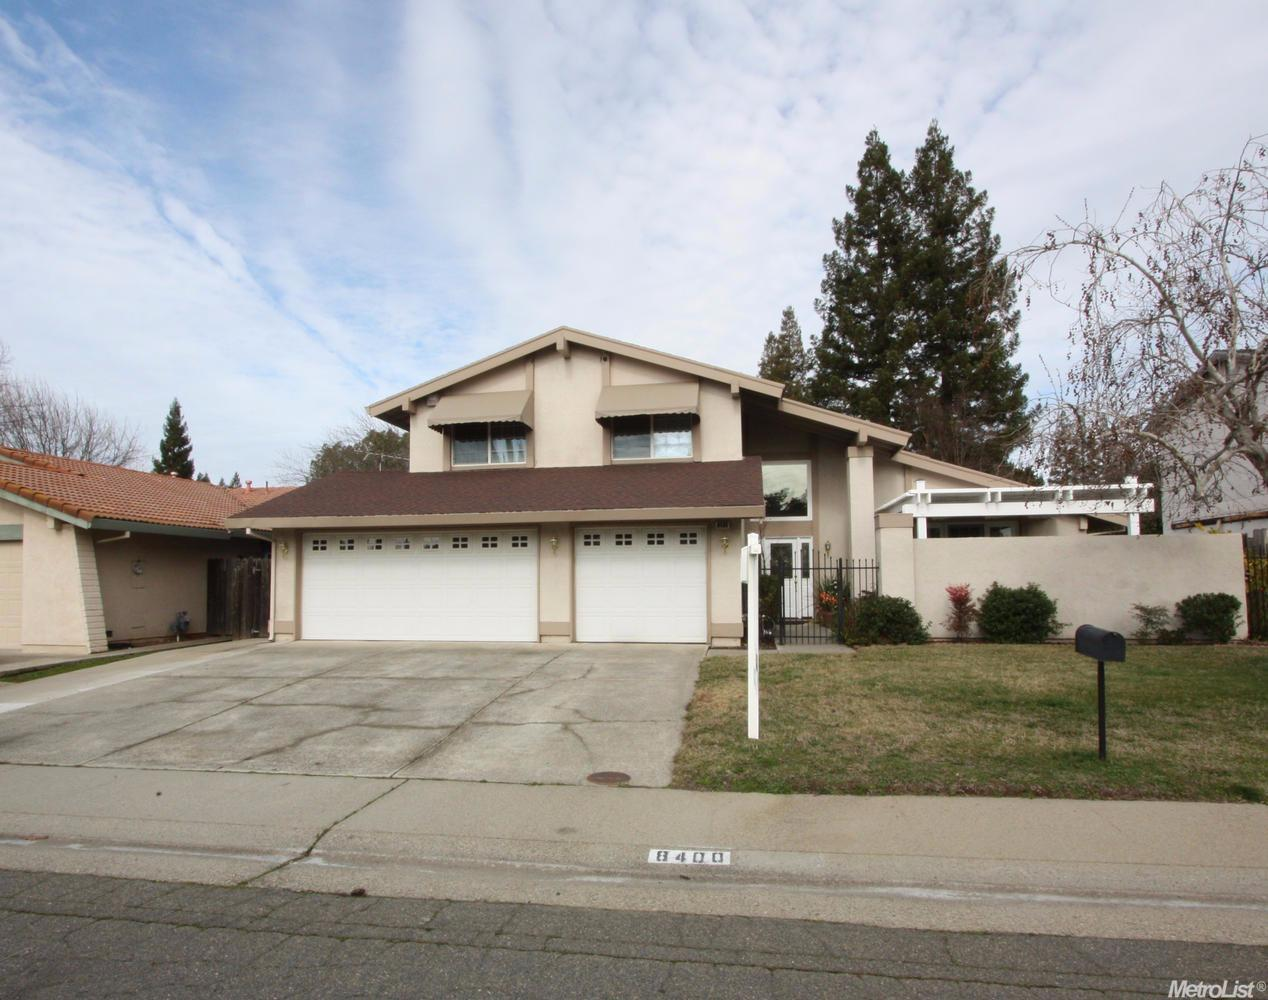 8400 Conover Dr, Citrus Heights, CA